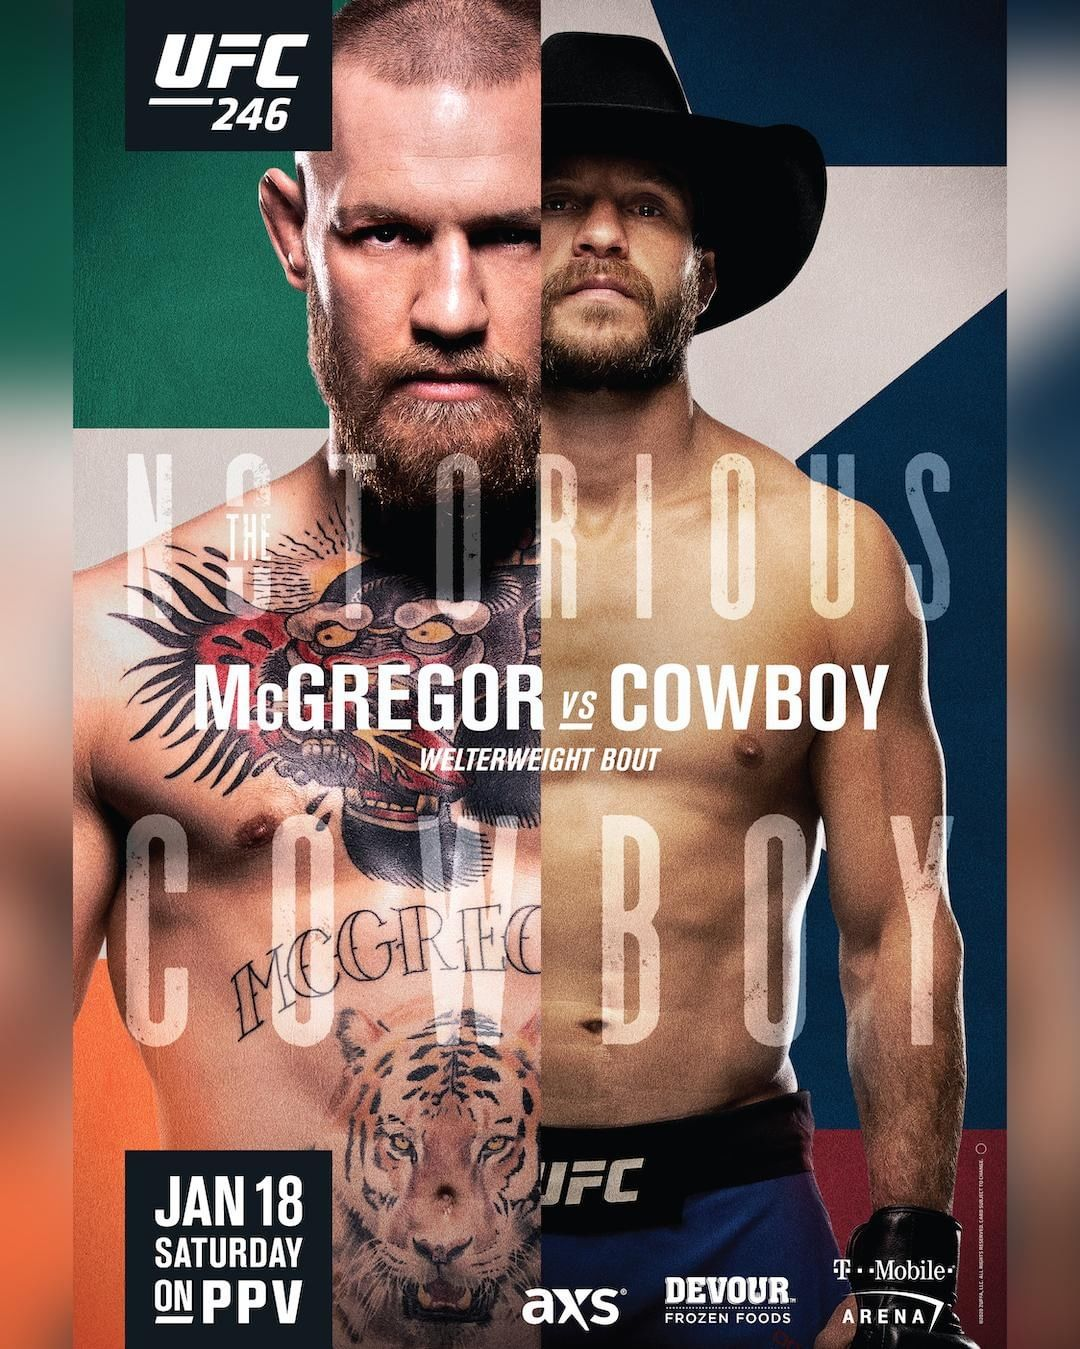 UFC 246 results poster